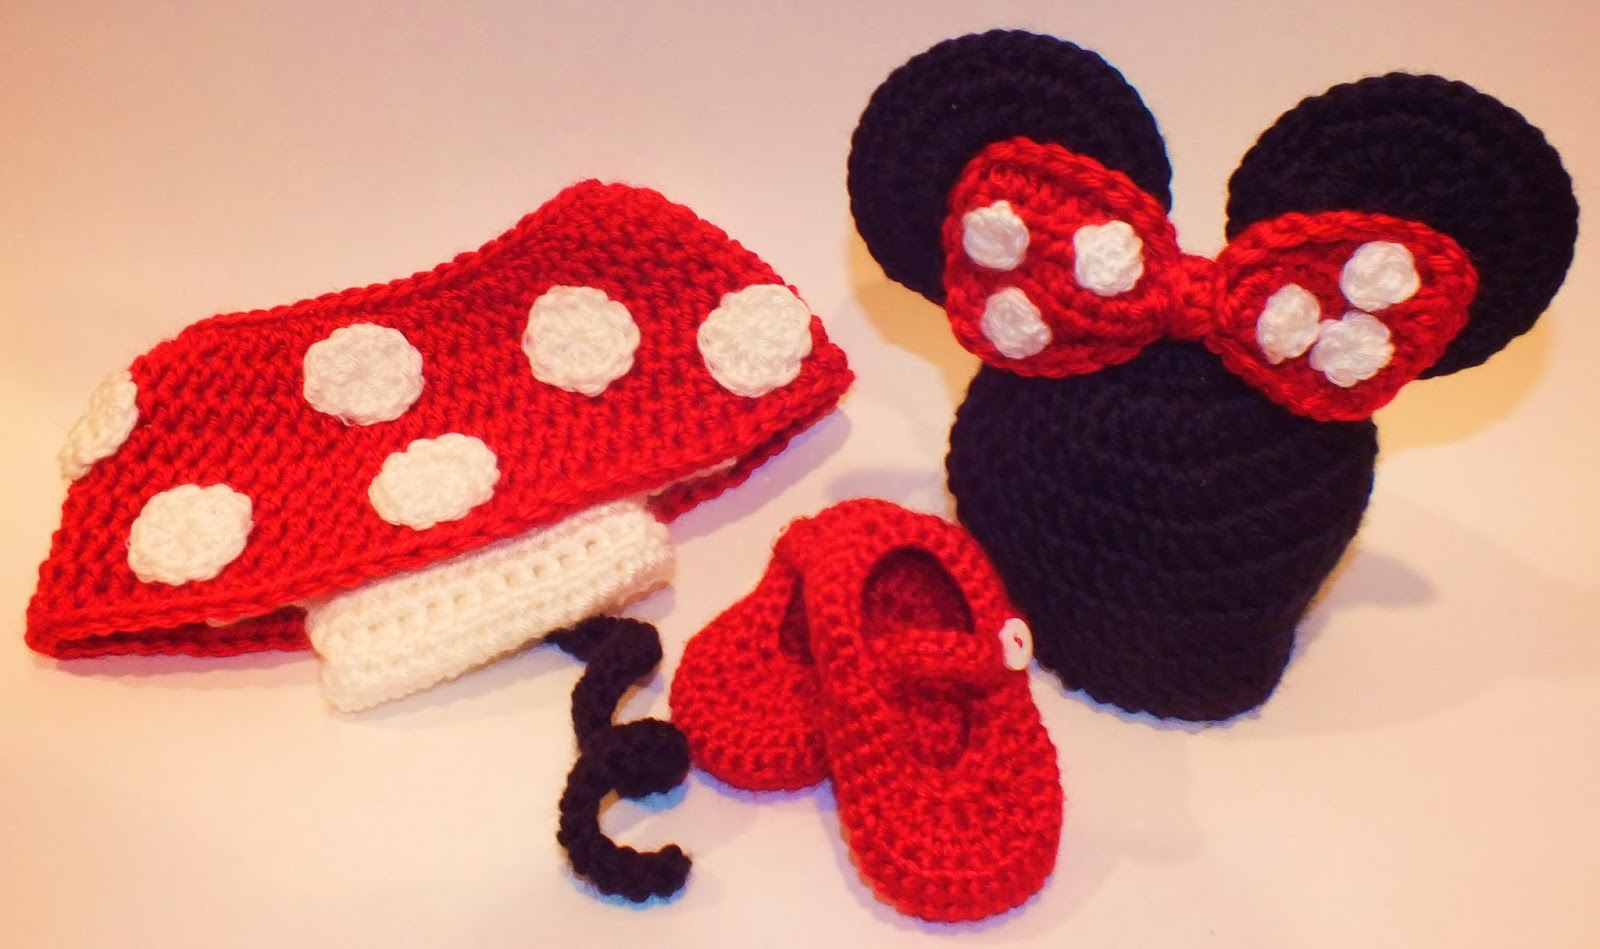 Free Crochet Pattern For Baby Minnie Mouse Outfit : Connies Spot? Crocheting, Crafting, Creating!: Crochet ...